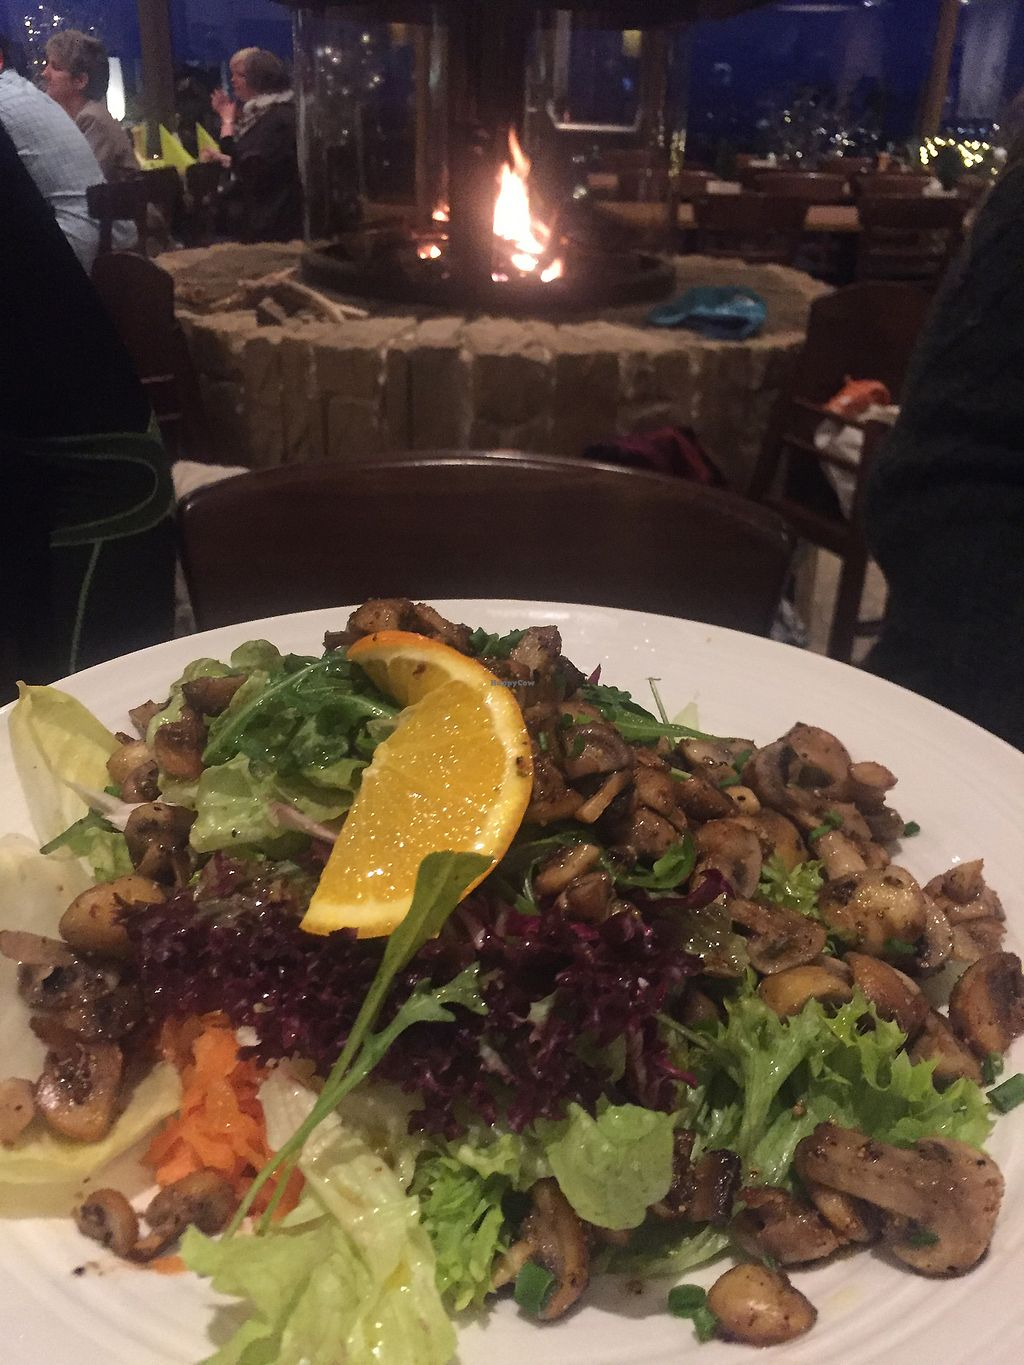 "Photo of Panorama  by <a href=""/members/profile/Emanuelle"">Emanuelle</a> <br/>Fresh and huge vegan salad with grilled mushrooms in front of cozy fire place <br/> March 9, 2018  - <a href='/contact/abuse/image/109259/368563'>Report</a>"